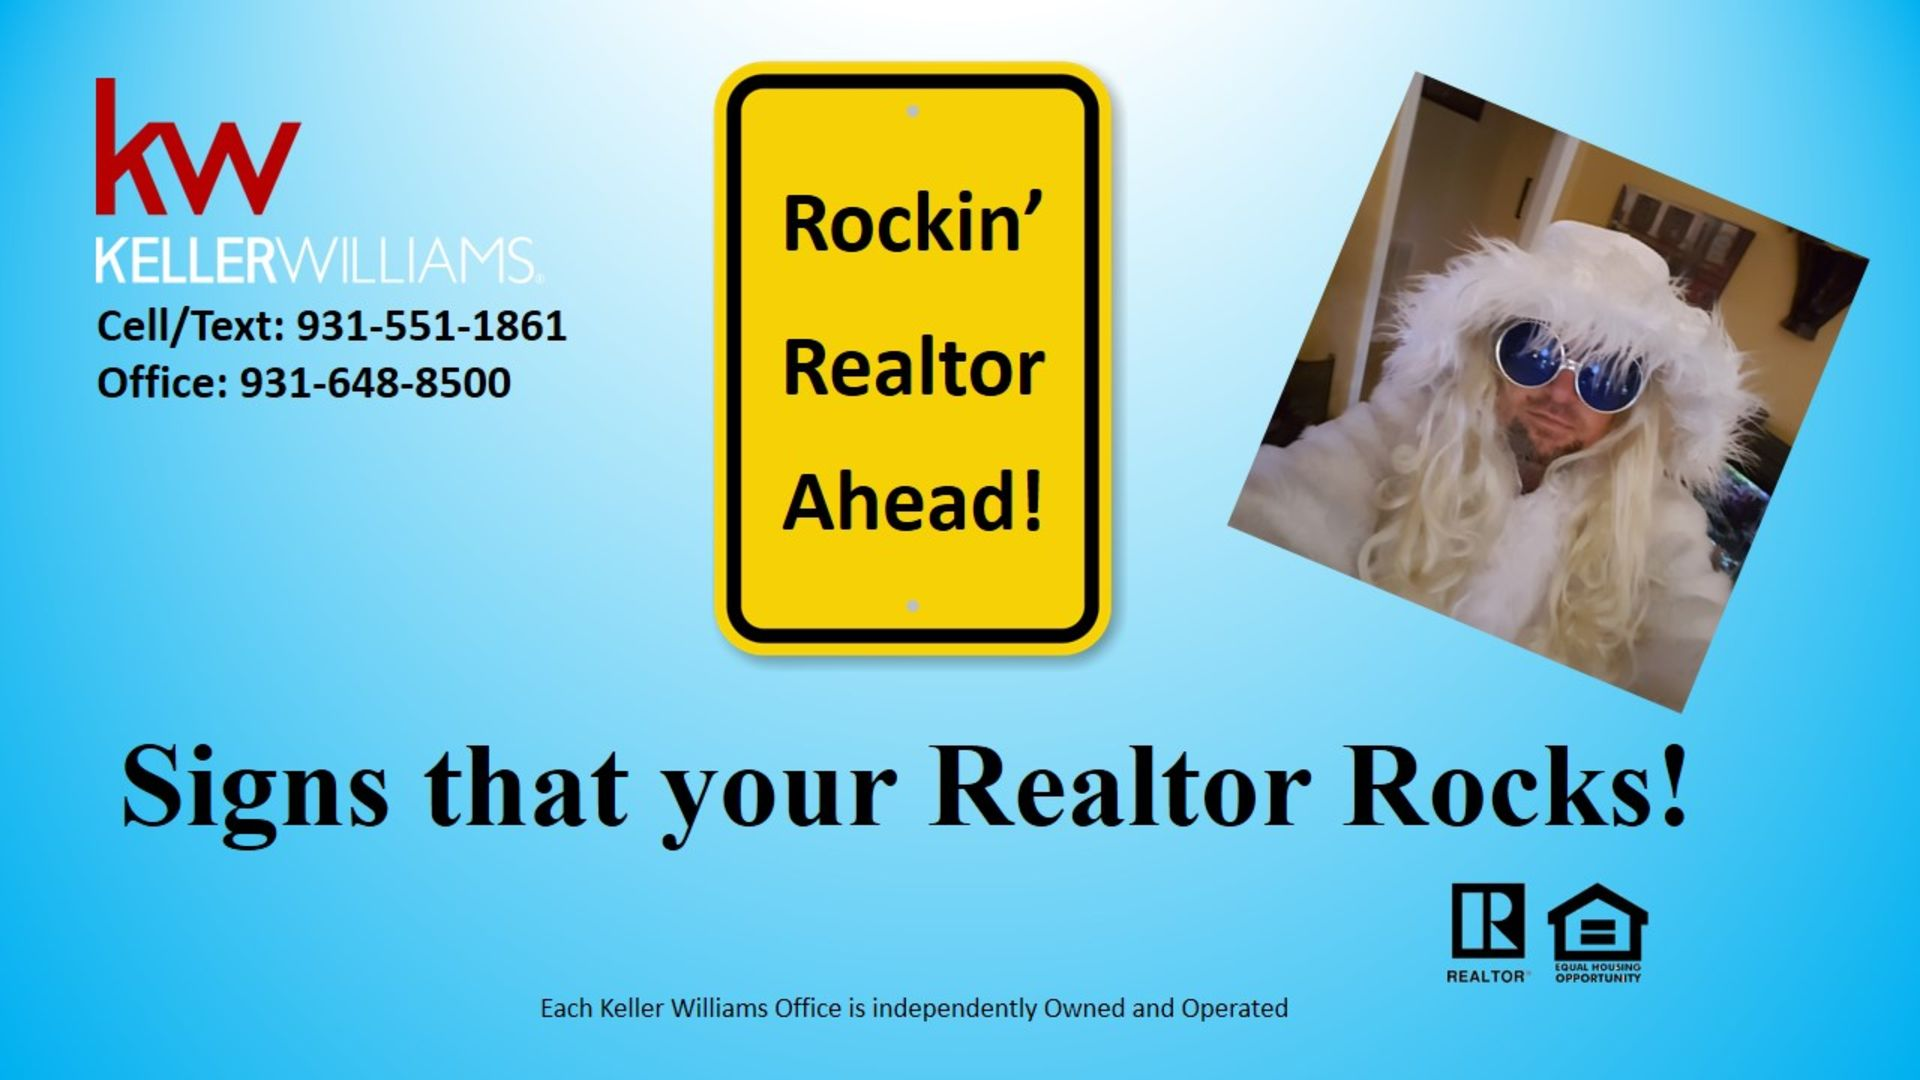 Signs that your Realtor Rocks!